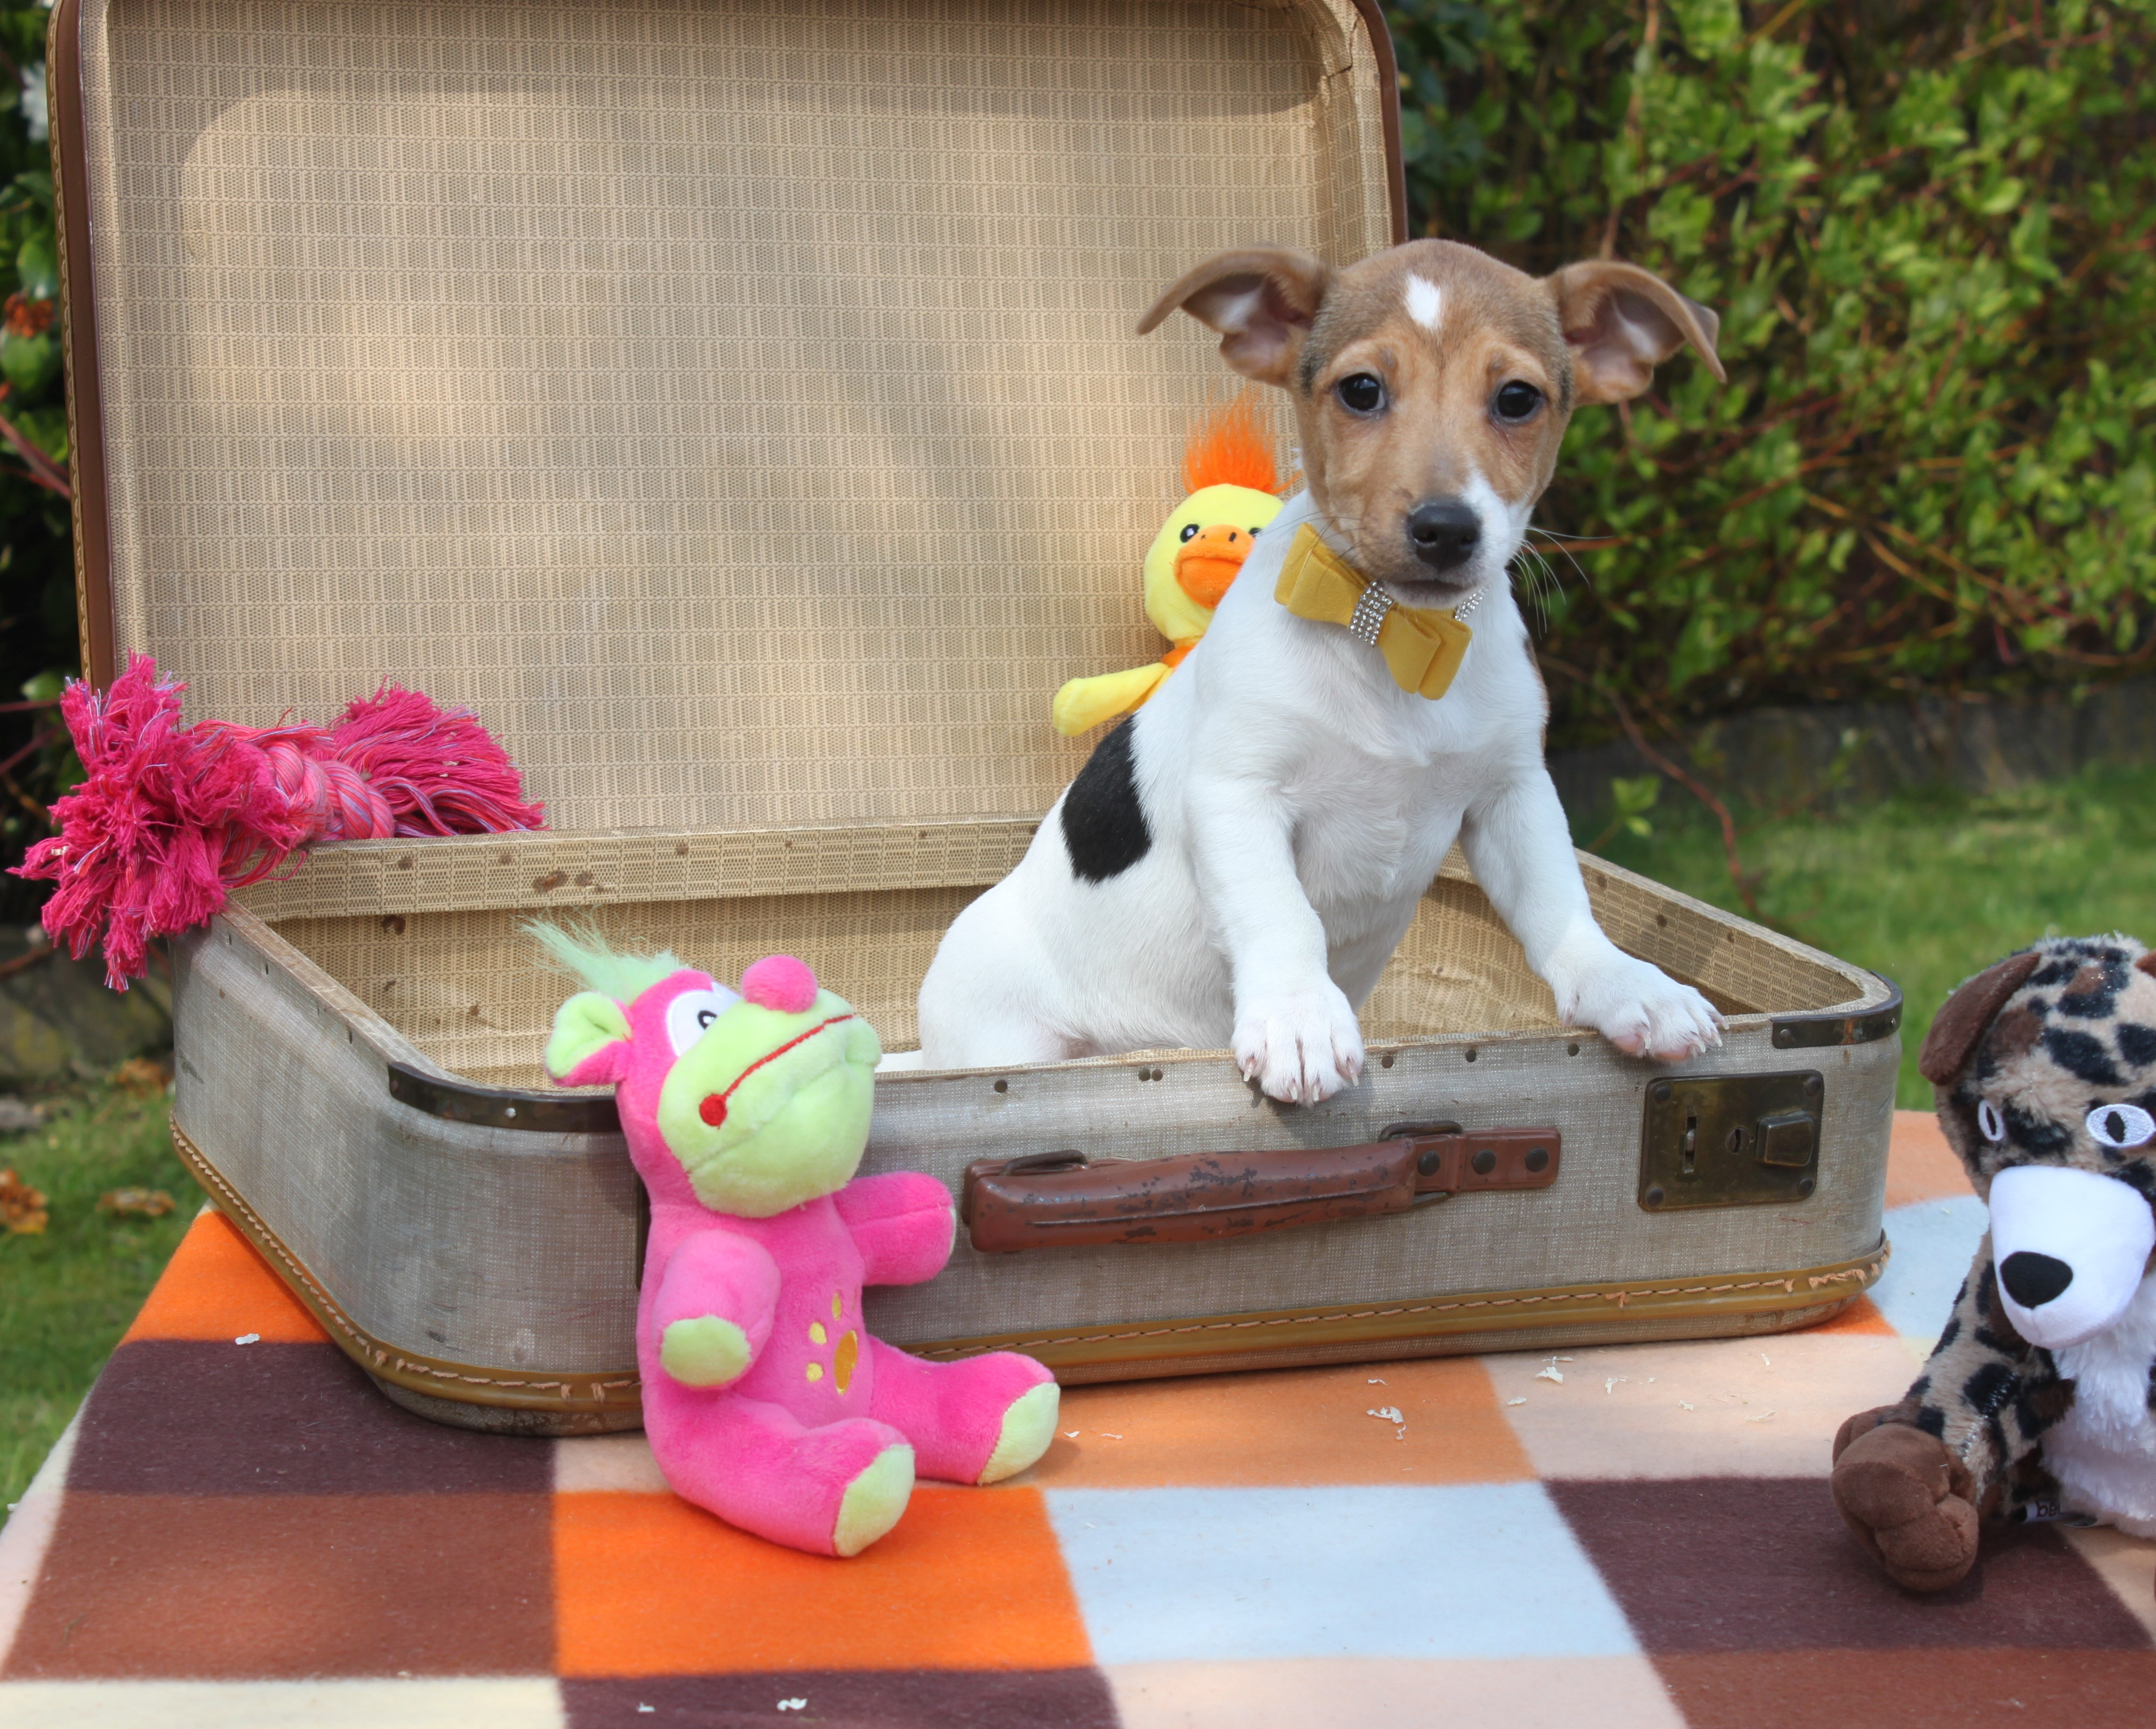 Jack Russel Terrier chiot Anna-Lucia